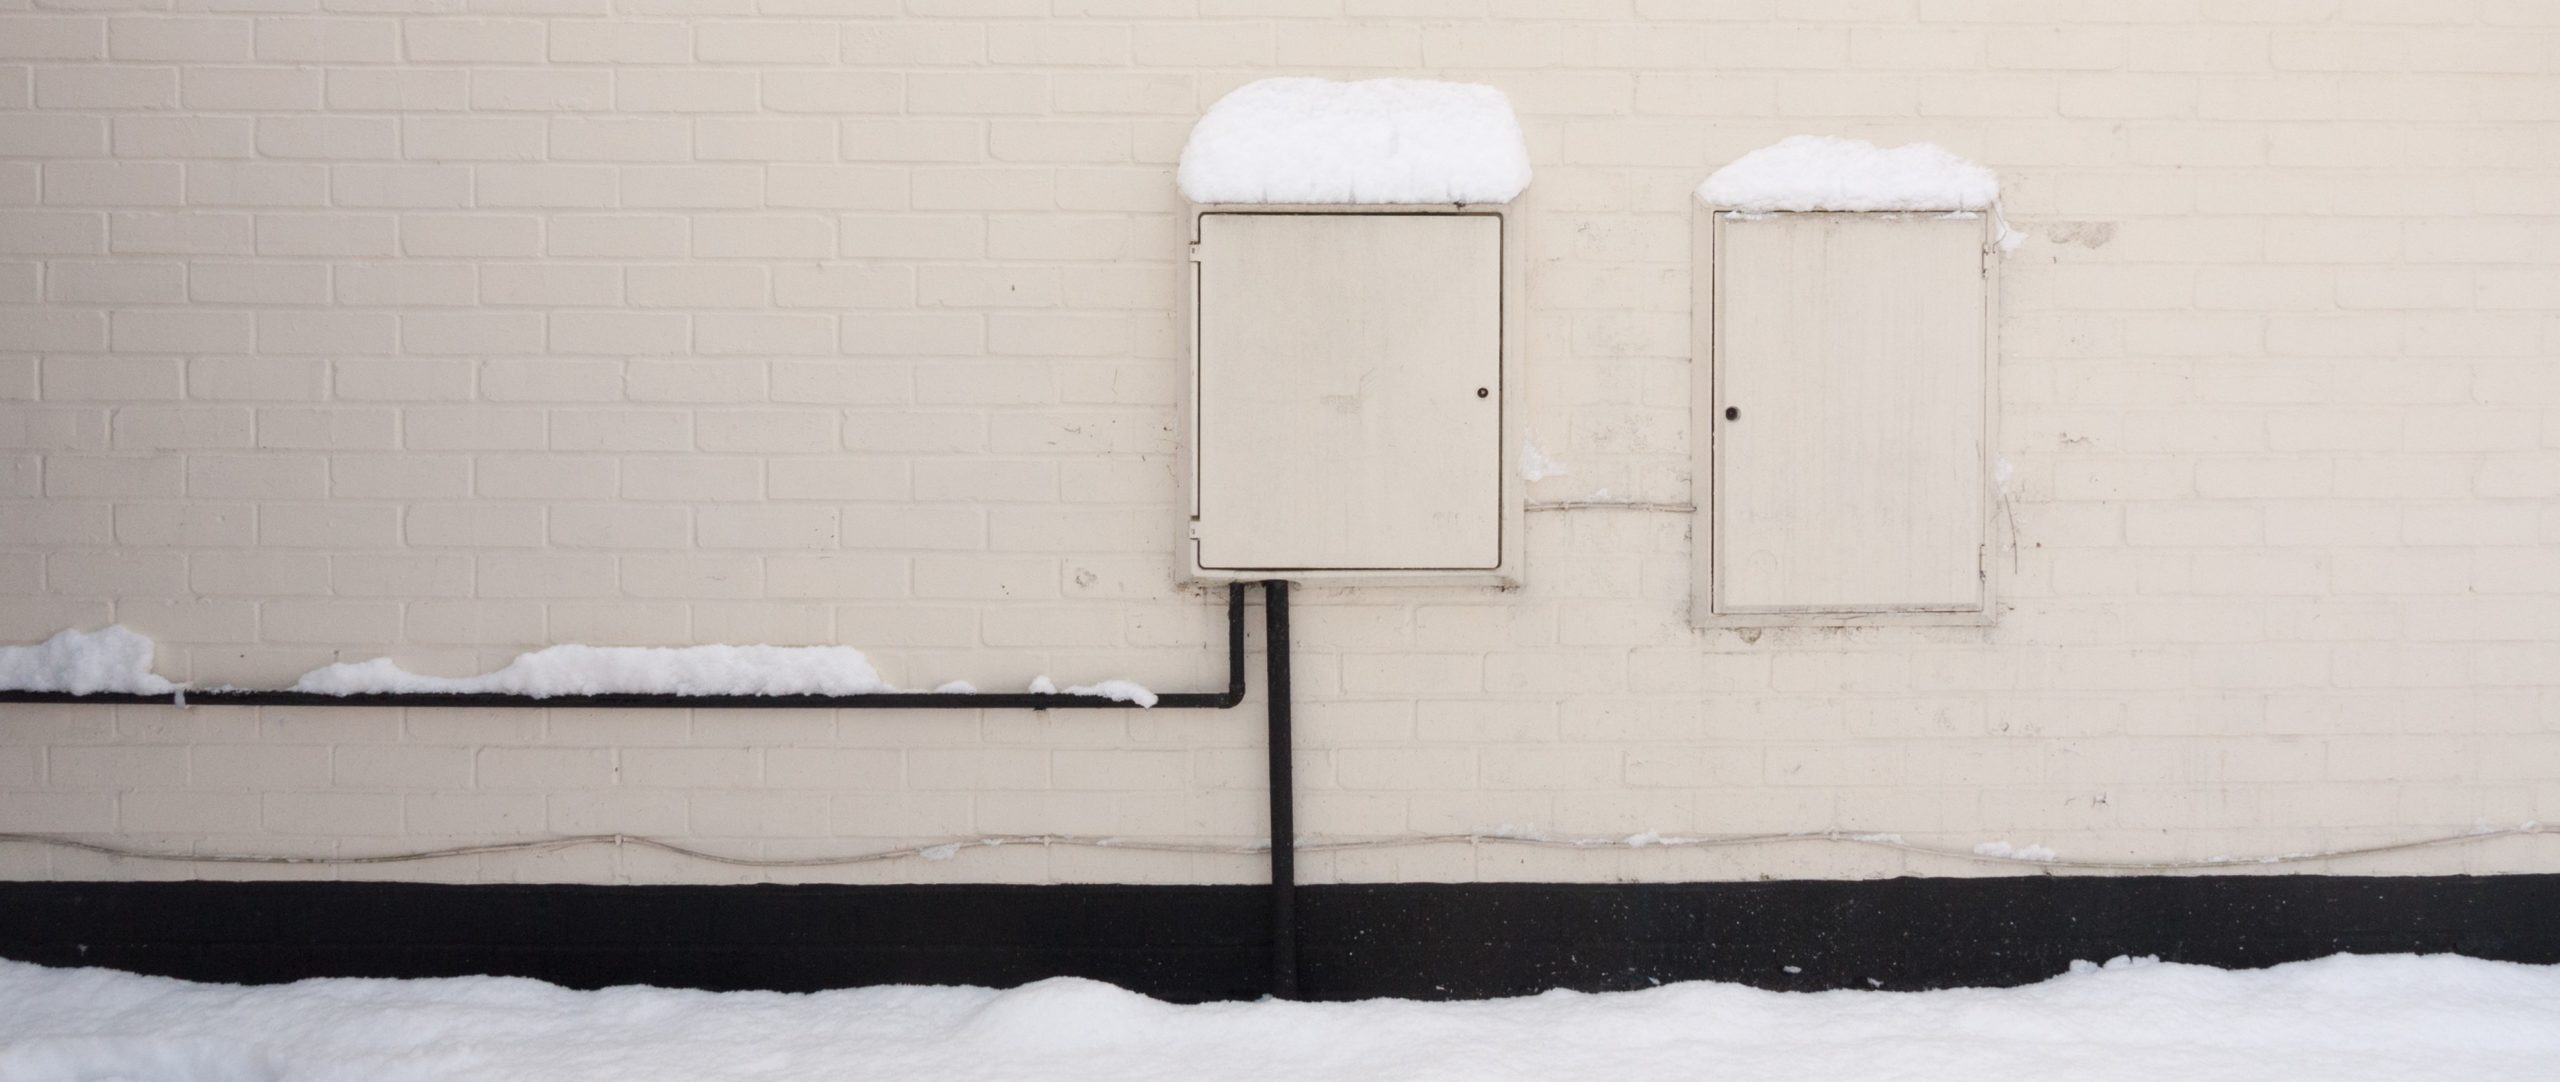 Blog: Gas consumption during the 'Beast from the East'